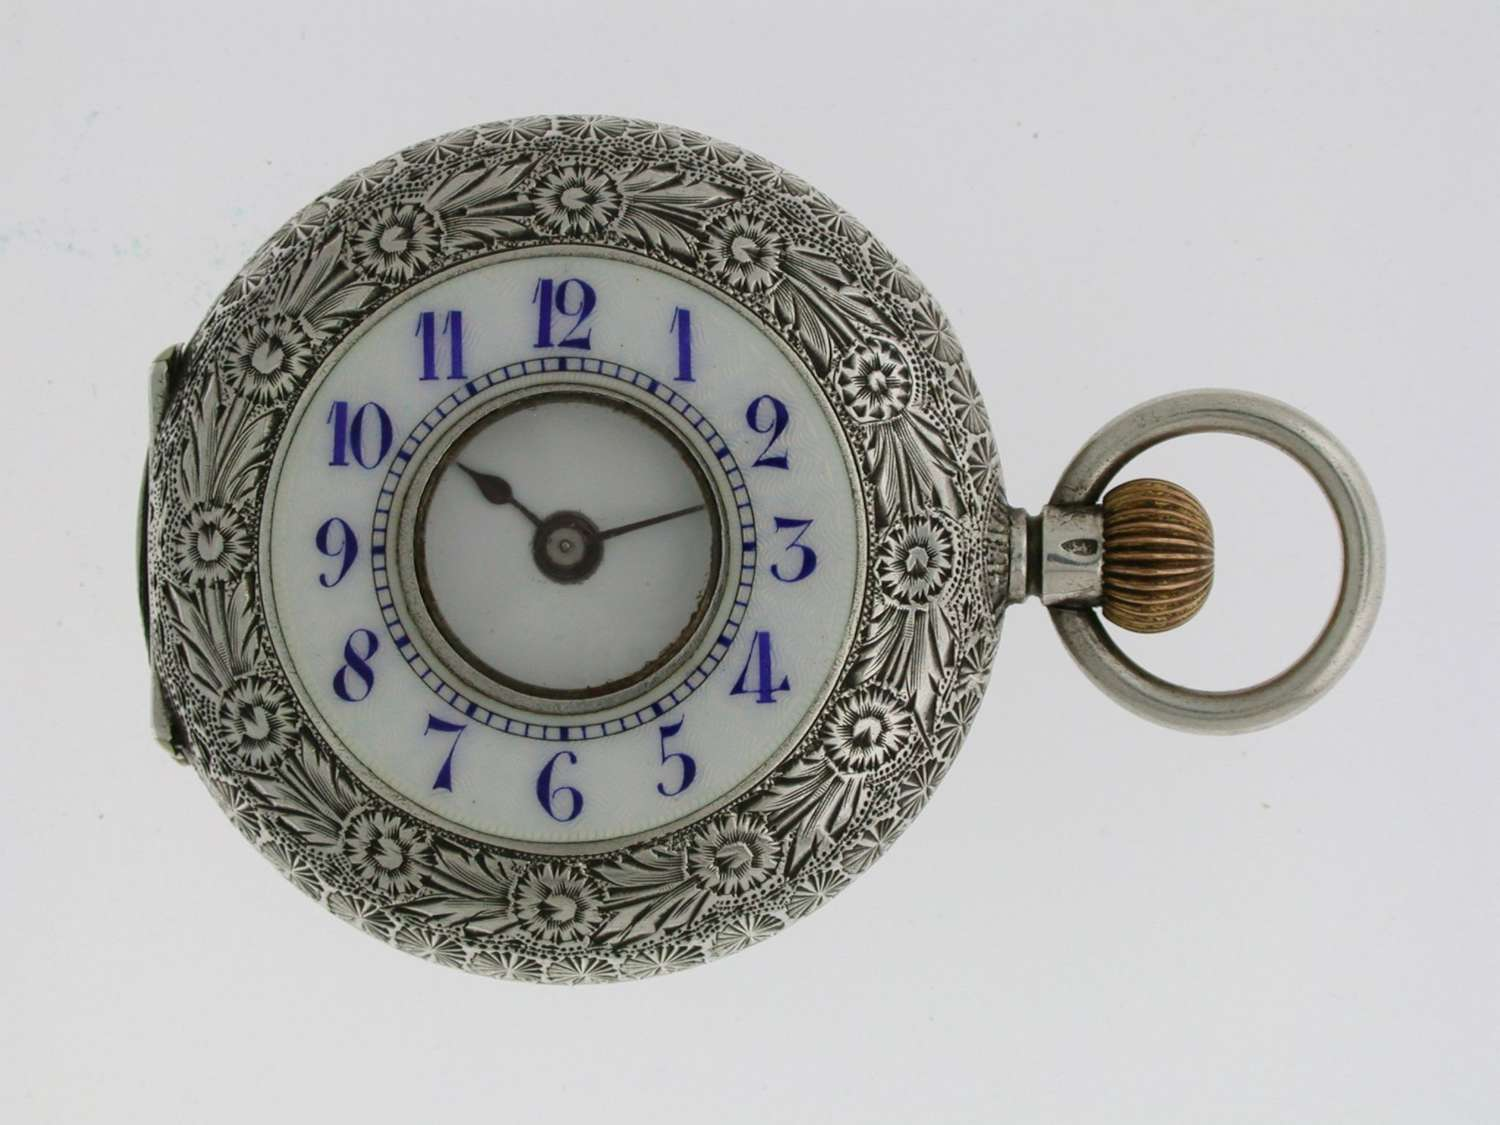 SILVER WALTMAN Swiss HALF HUNTER  POCKET WATCH 1900